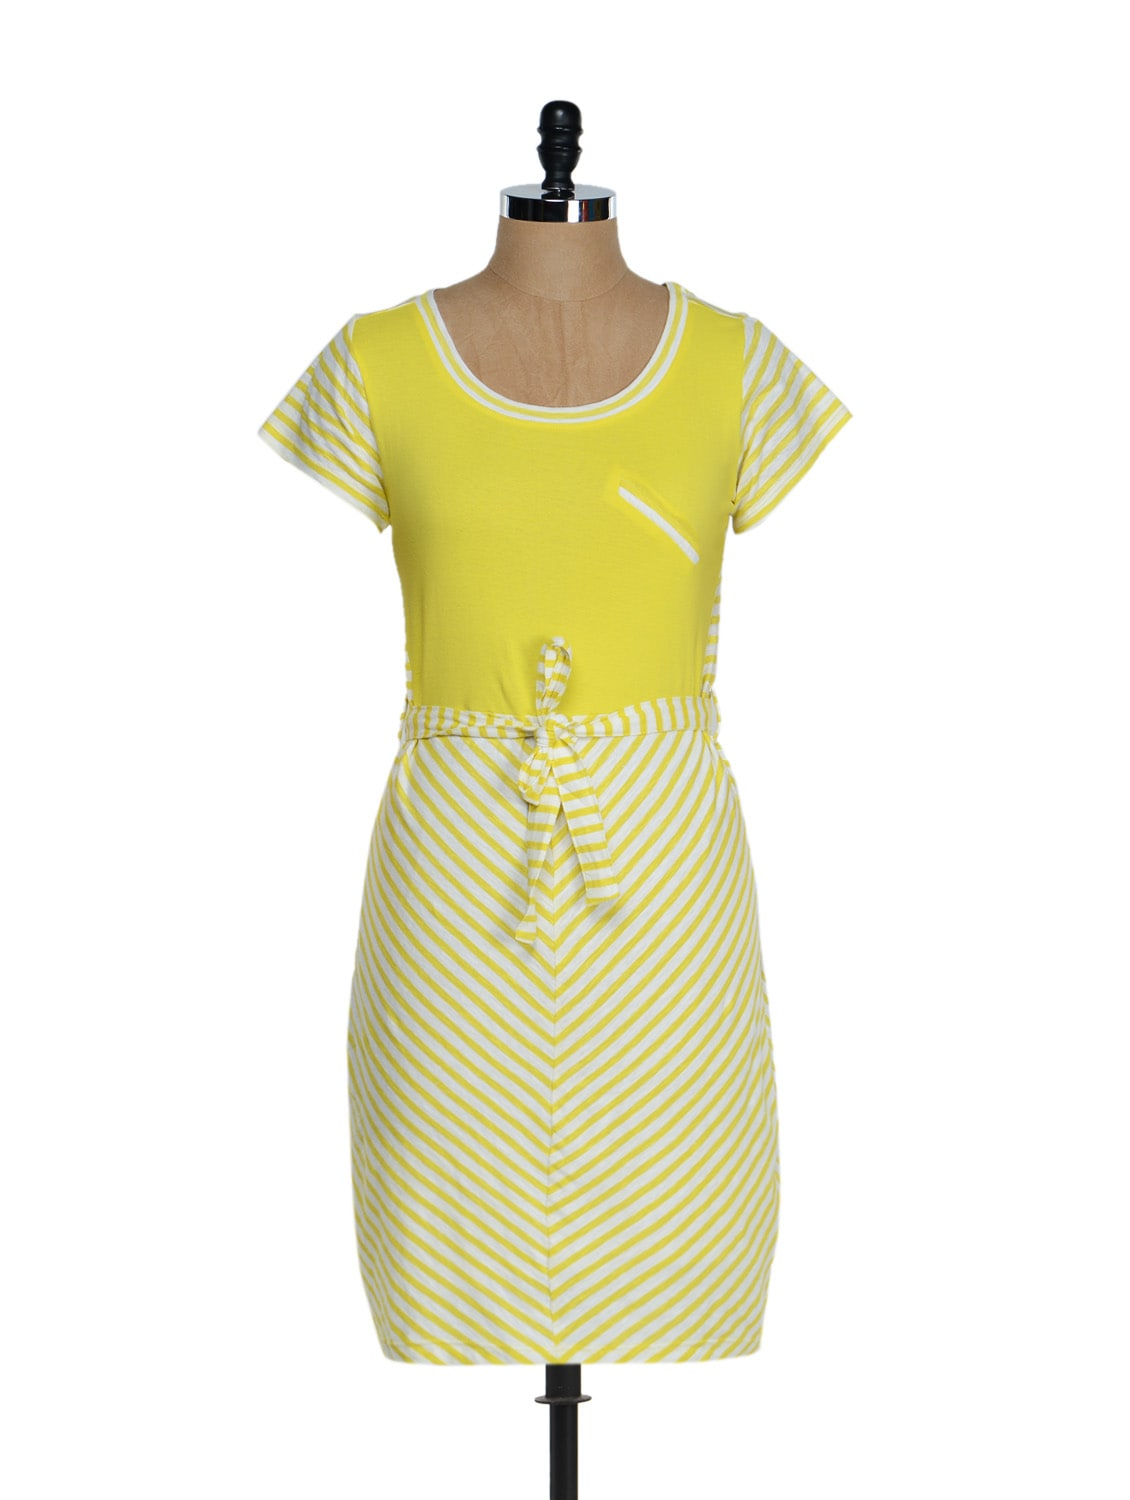 Striped Yellow Flavour Dress - QUEST